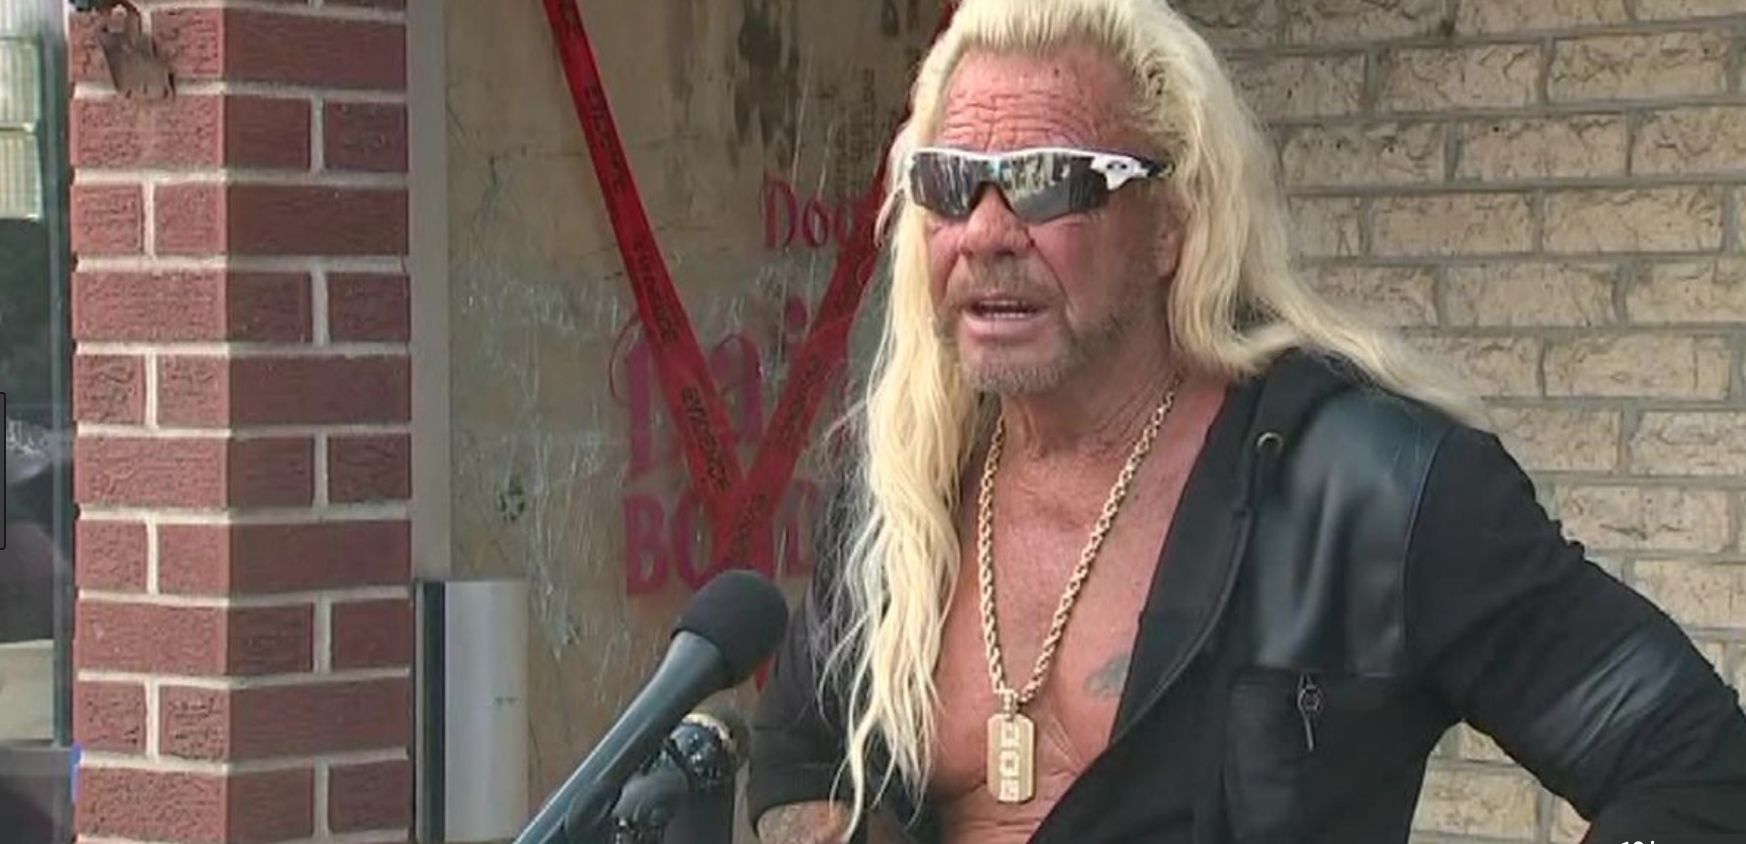 Dog The Bounty Hunter Store Burglary Believed To Be An